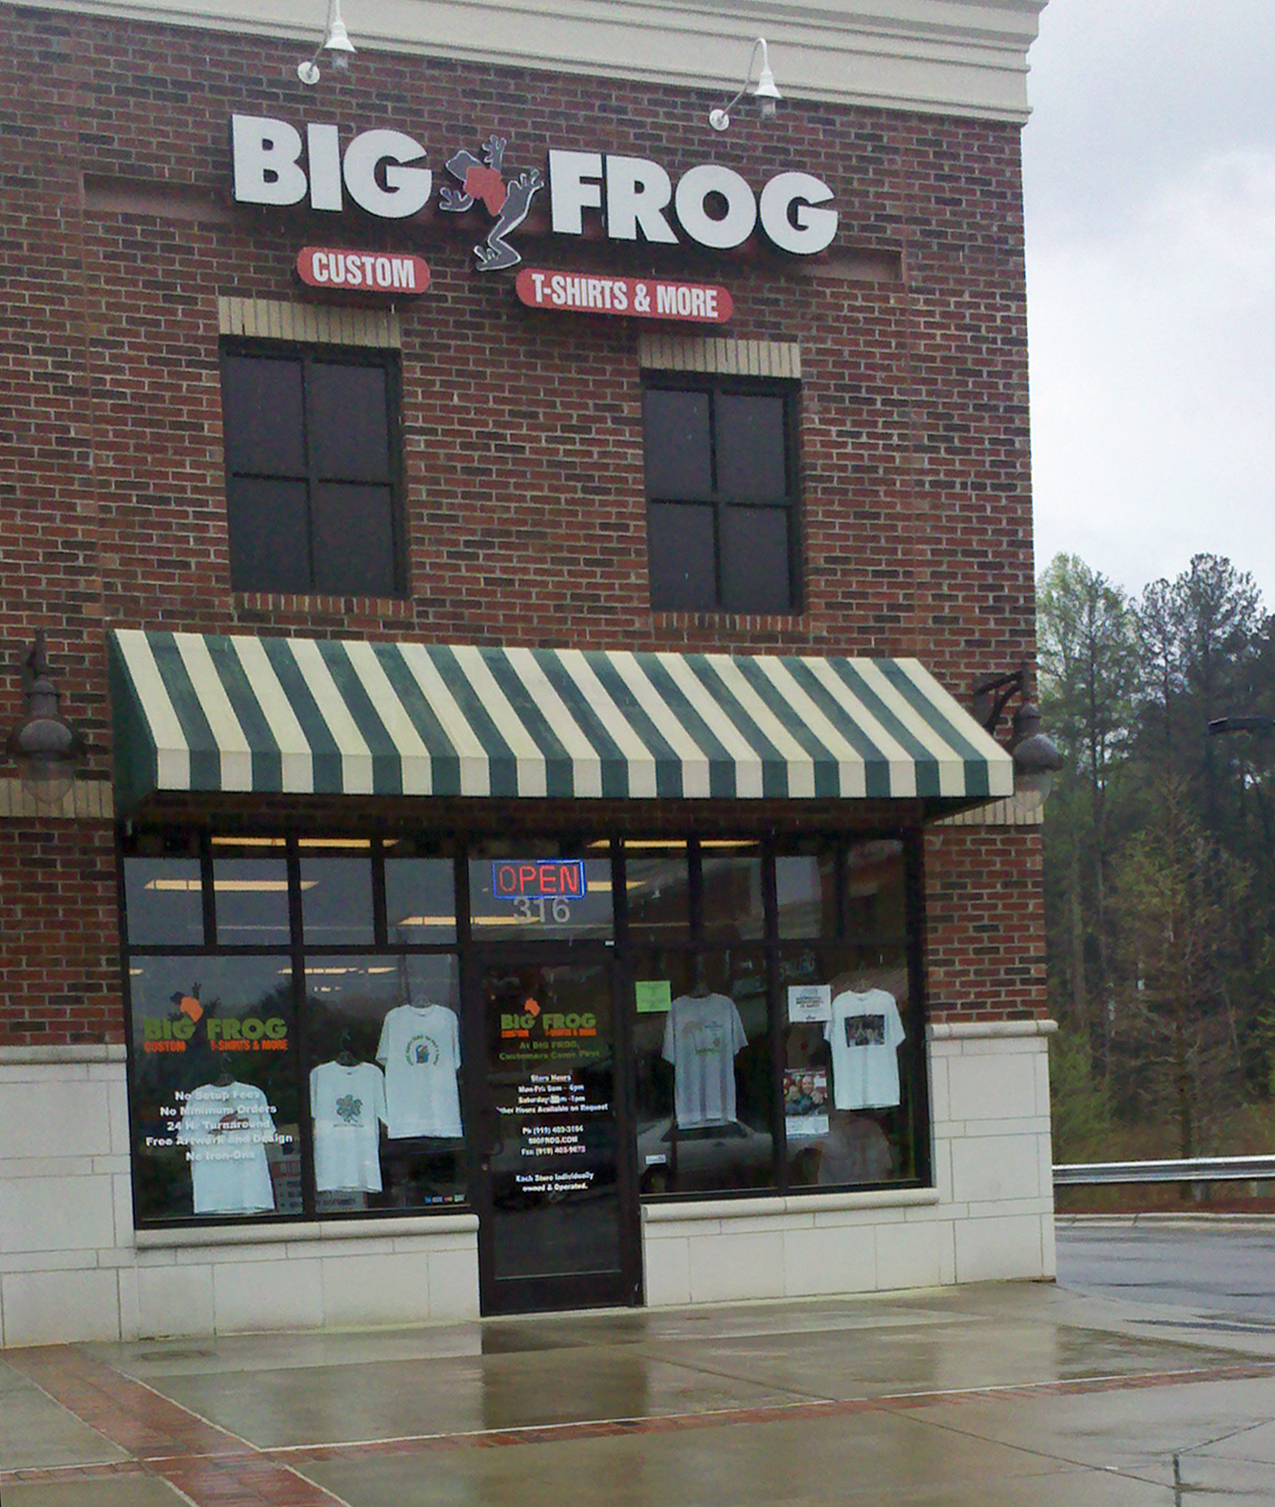 Notes from a mom in chapel hill a guide big frog for Big frog custom t shirts